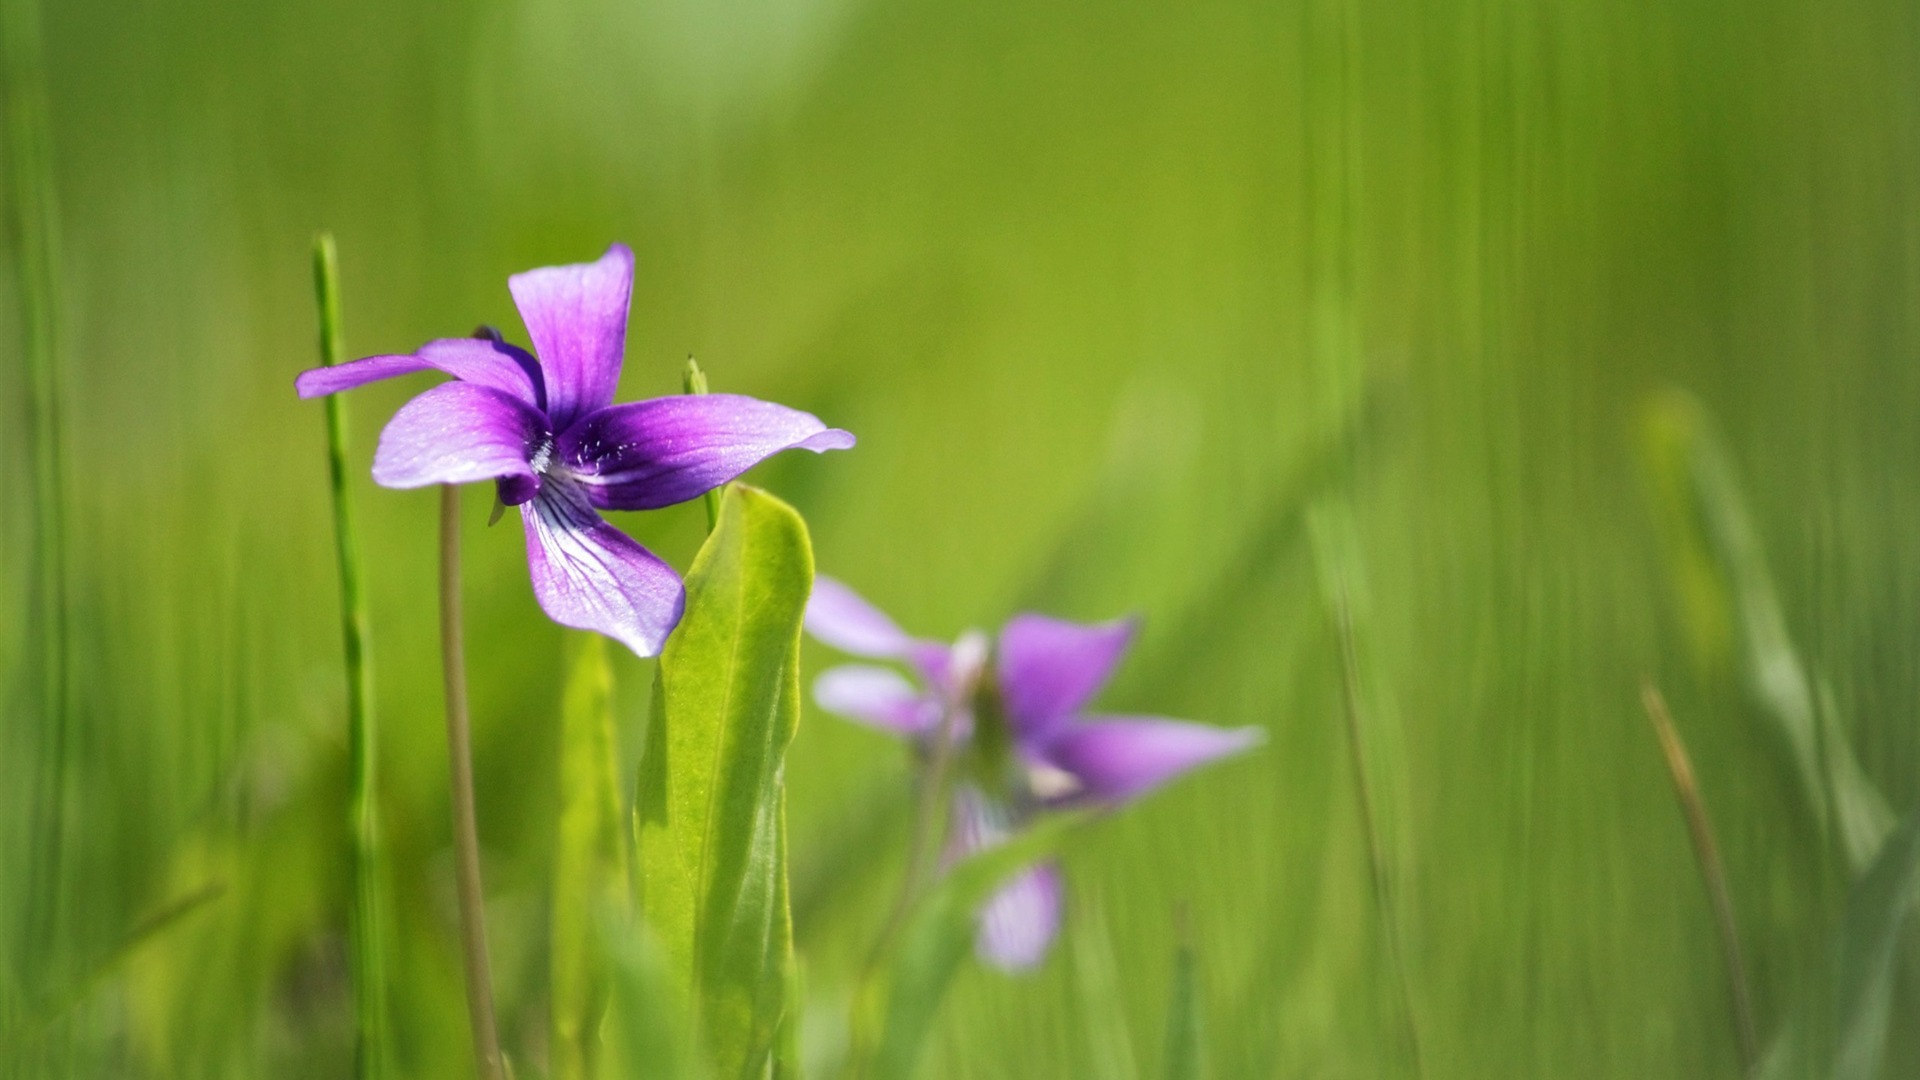 Purple Flowers Growing Photography Hd Wallpaper Preview